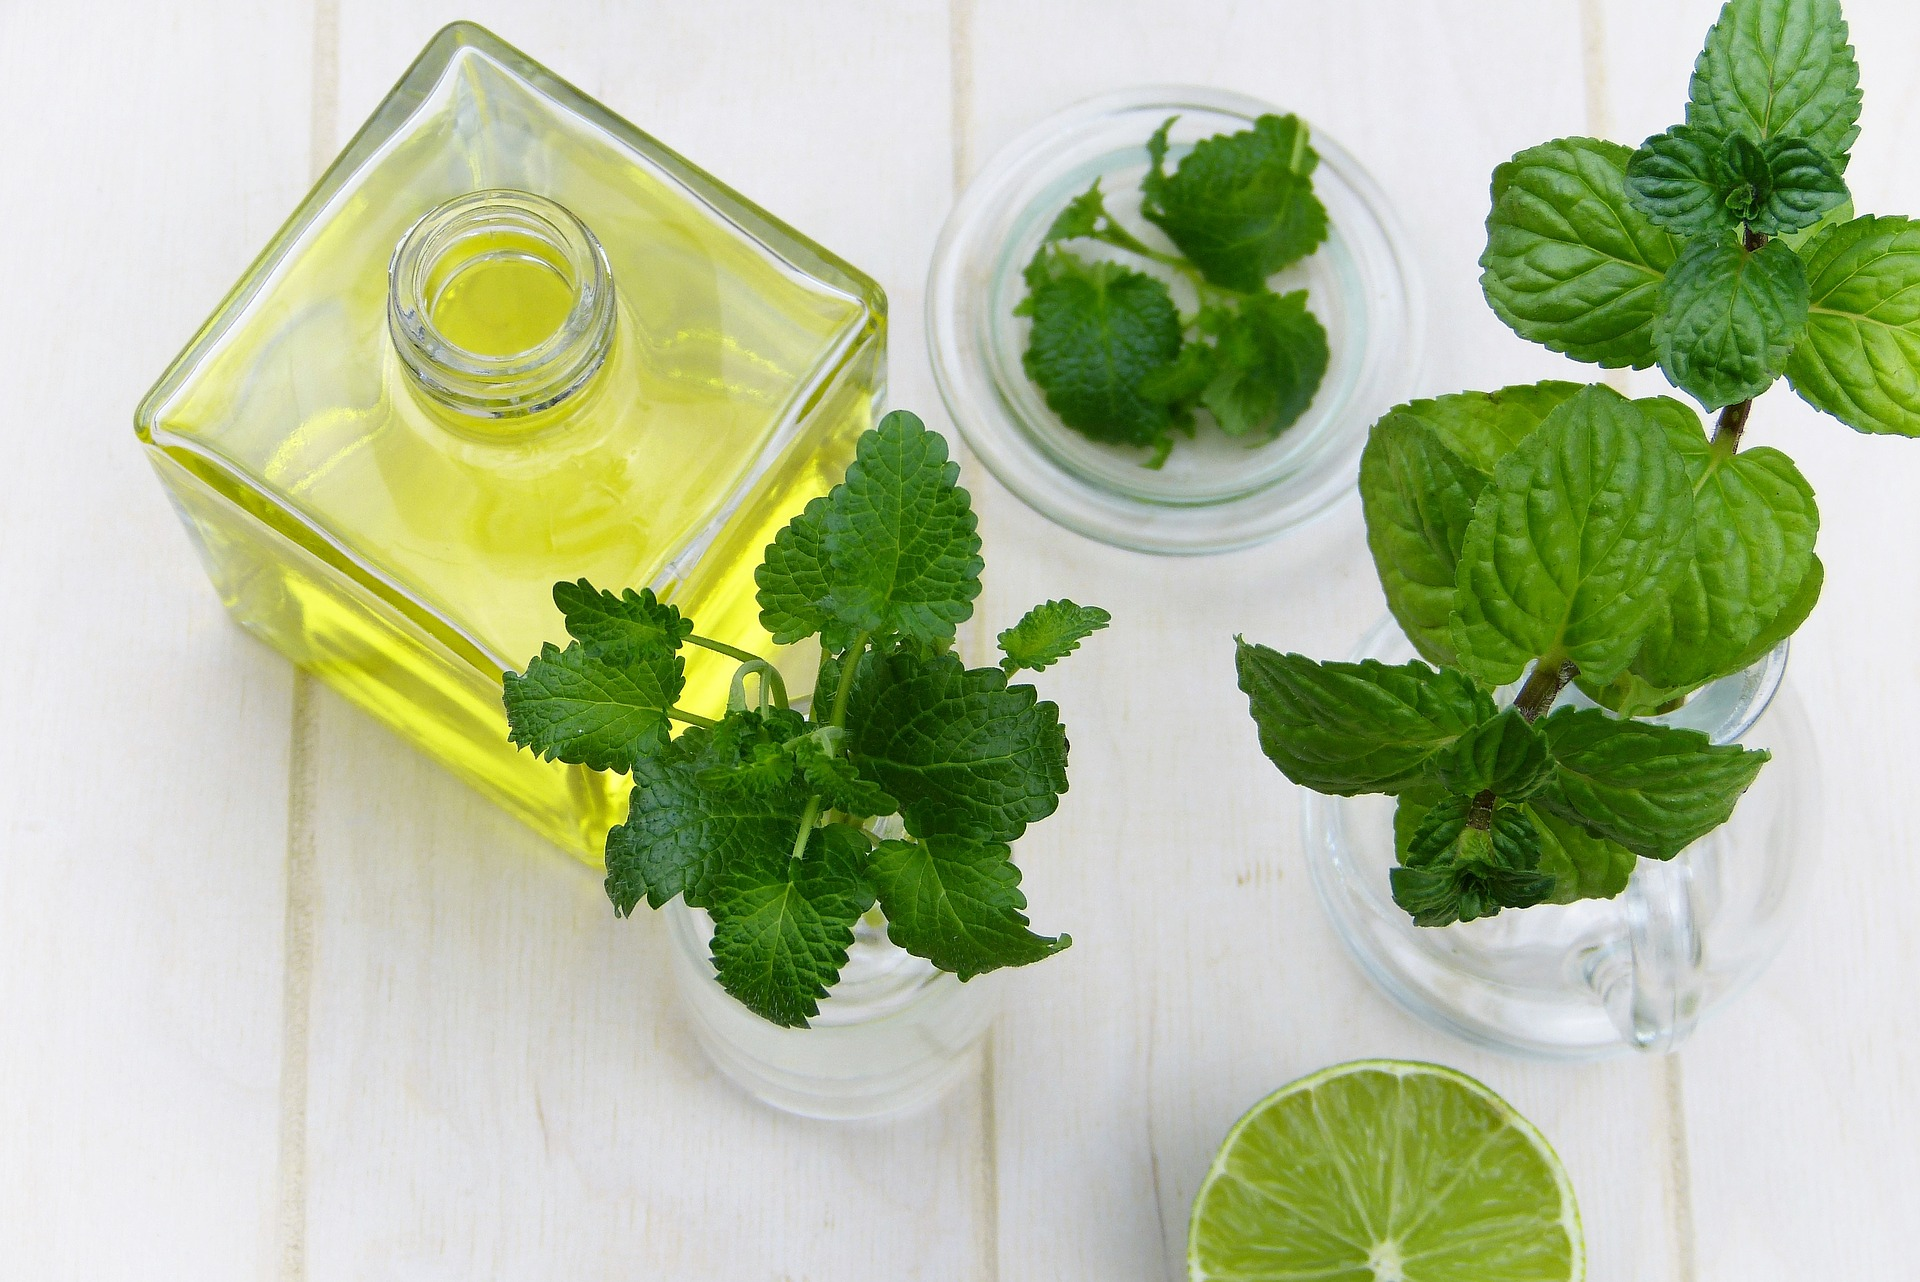 Peppermint helps to keep ants away